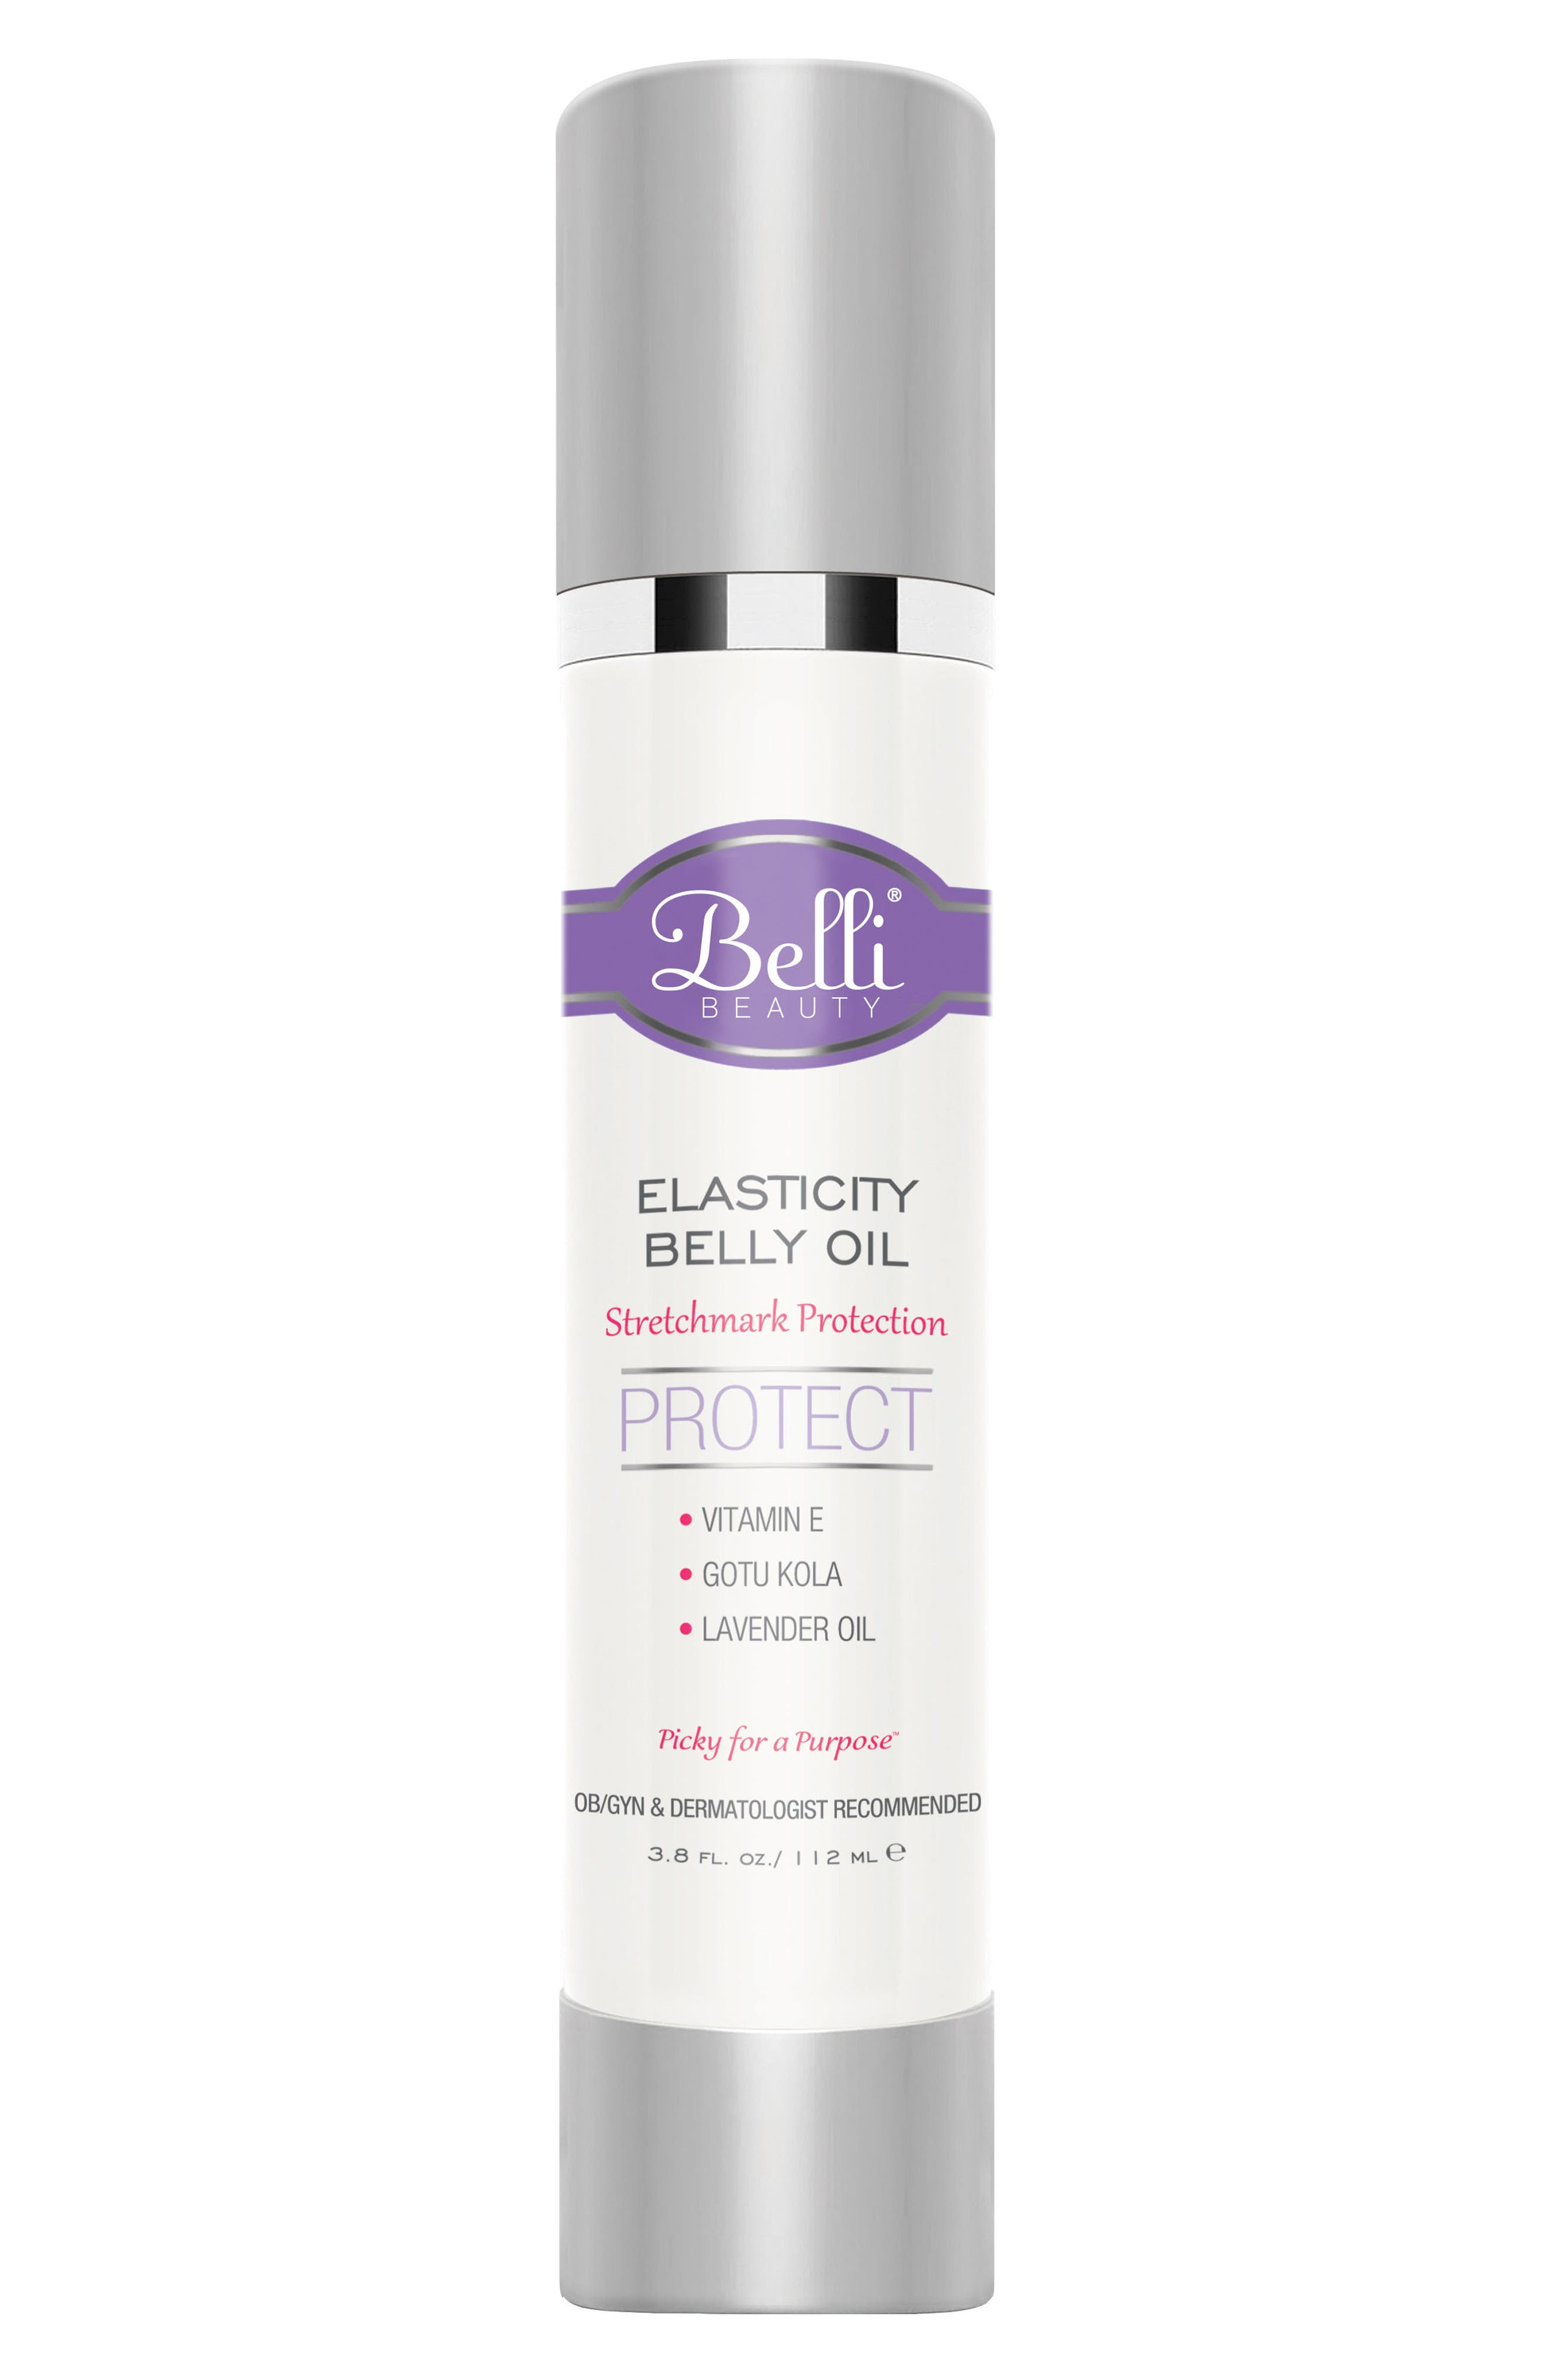 Belli Skincare Maternity 'Elasticity' Belly Oil for Stretch Mark Protection